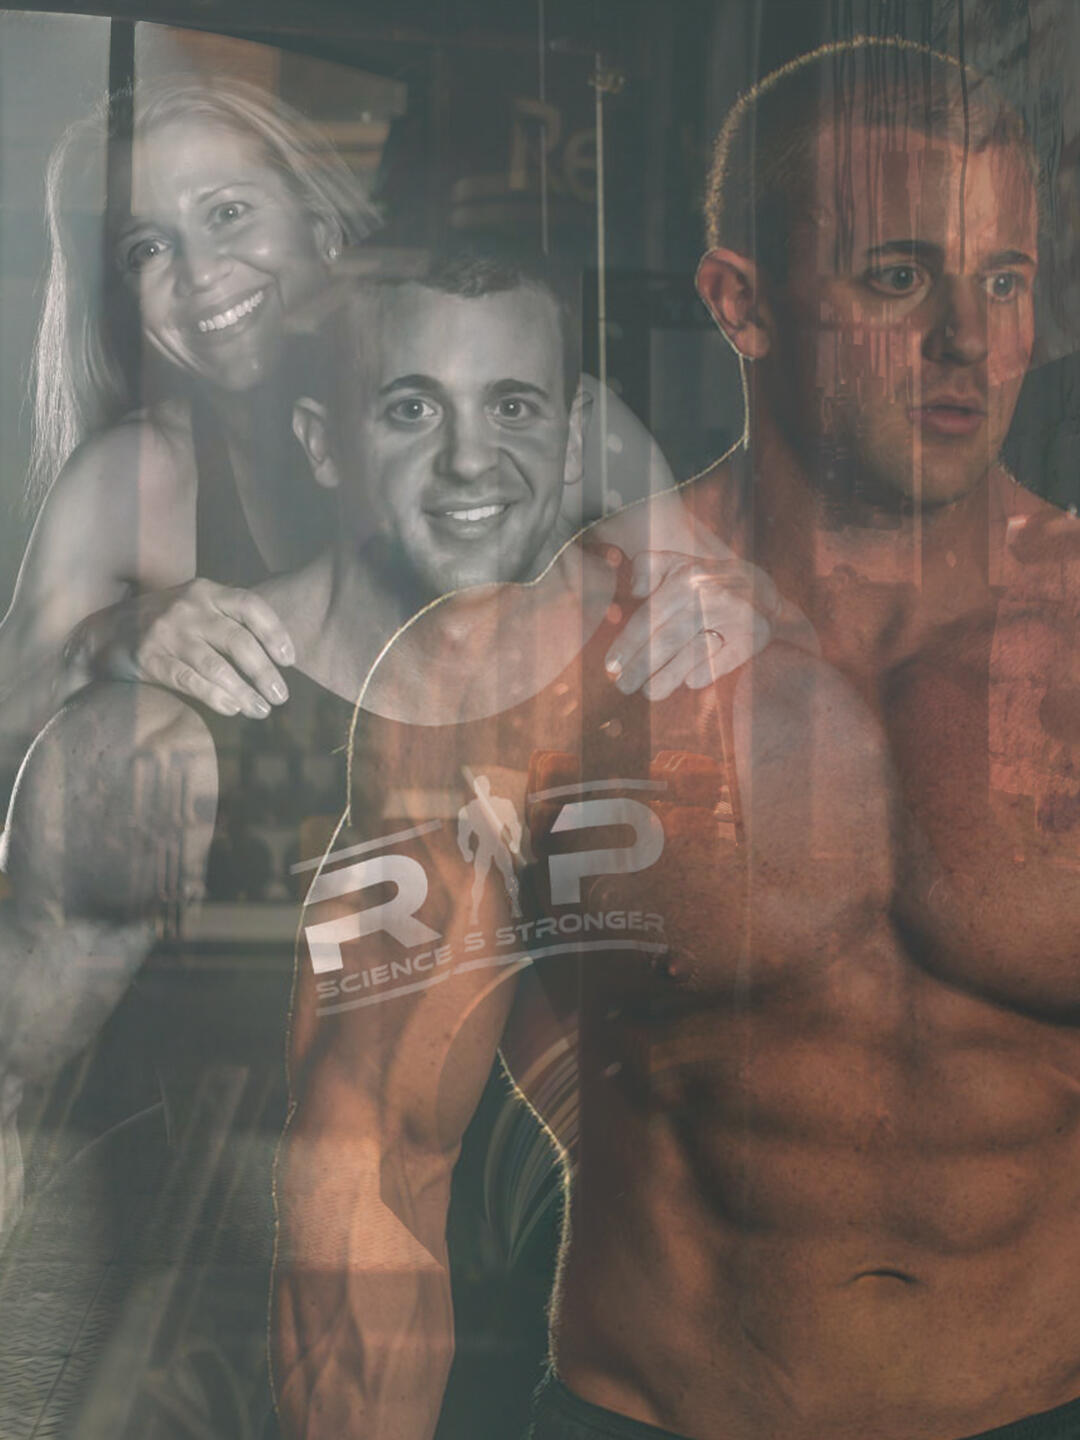 Nick Shaw: CEO & Co-Founder of Renaissance Periodization™, Co-Host of the RP Strength Podcast, Author of 'Fit For Success'